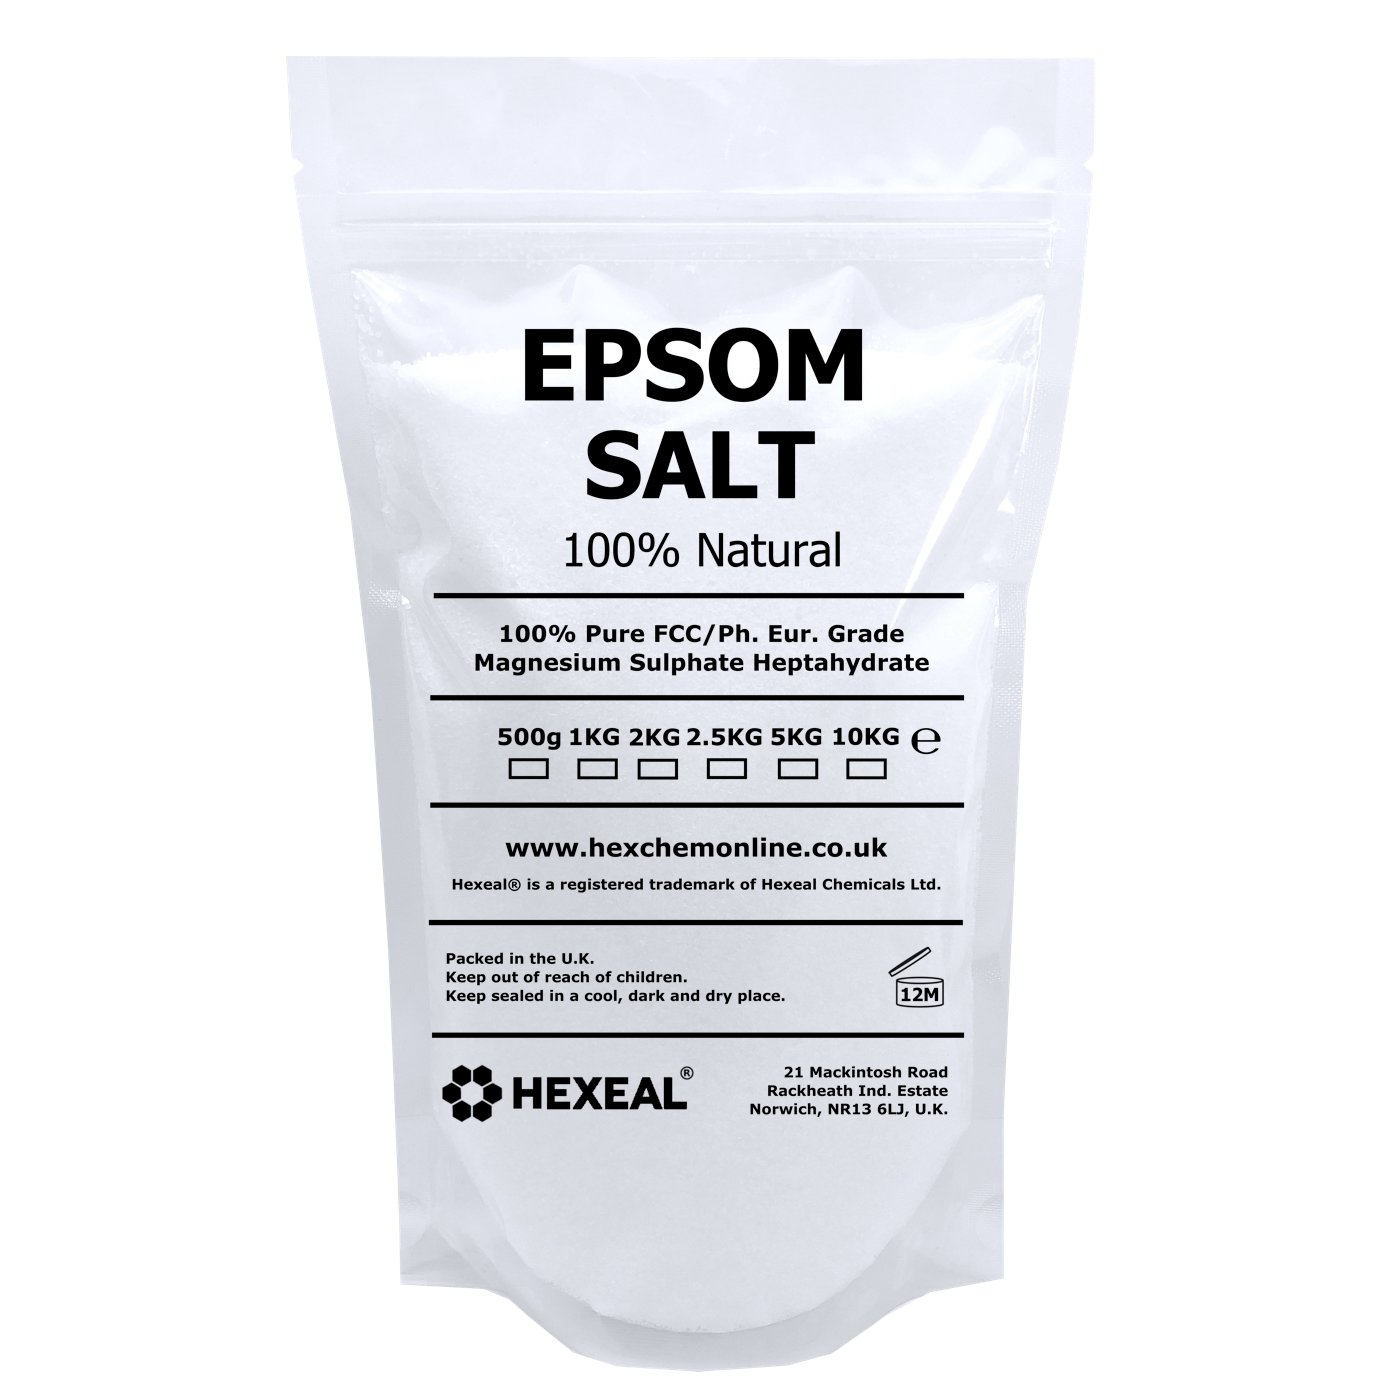 Hexeal EPSOM SALT | 1KG PREMIUM POUCH | 100% Natural | FCC Food Grade | Magnesium Sulphate Hexeal®